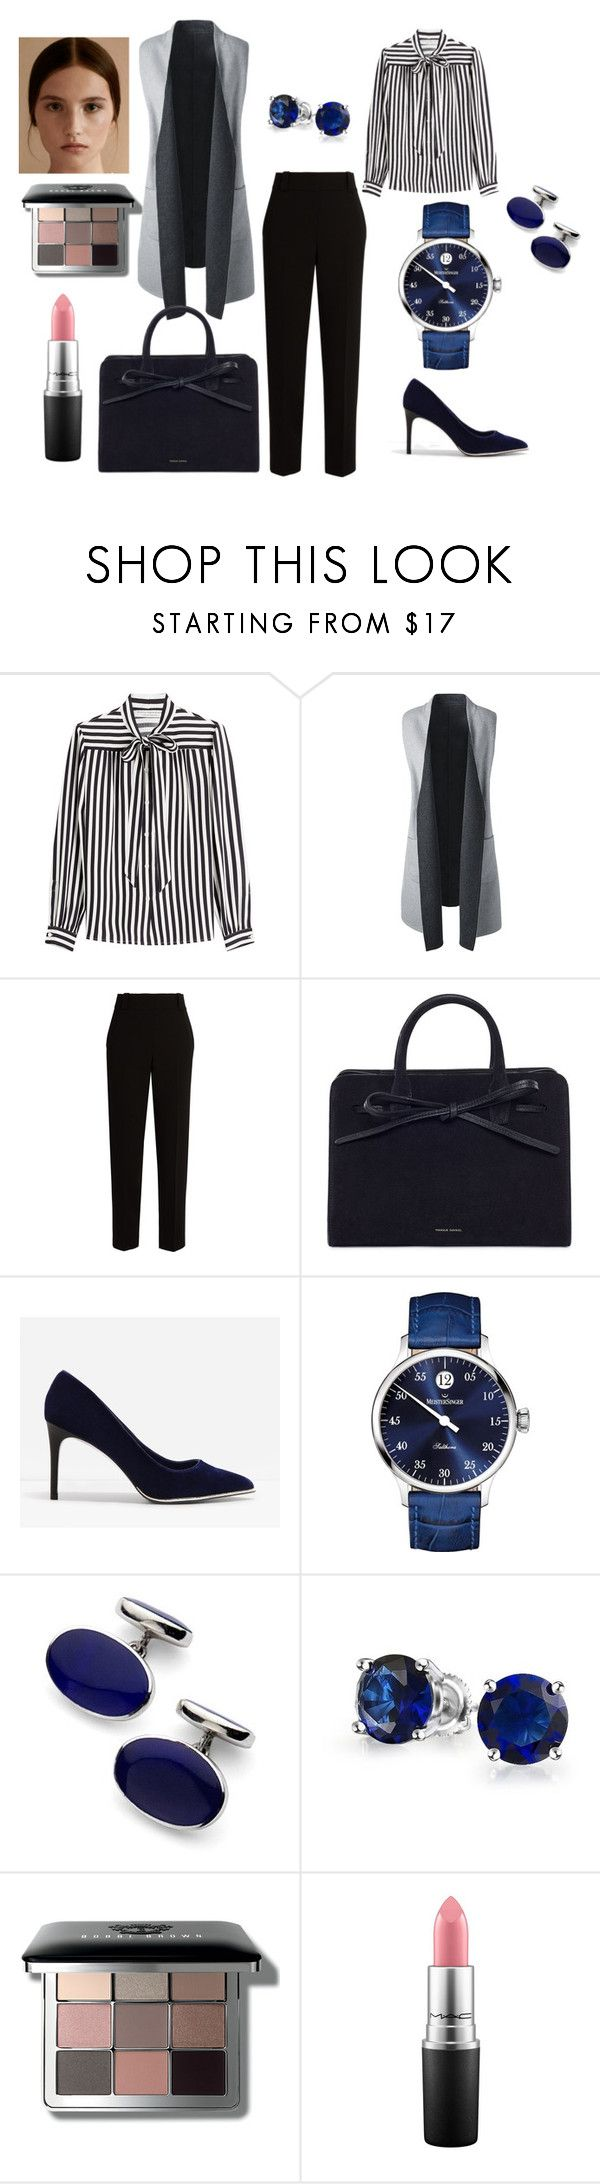 """""""hips classic"""" by explorer-14860390596 on Polyvore featuring мода, Philosophy di Lorenzo Serafini, Lands' End, The Row, Mansur Gavriel, CHARLES & KEITH, MeisterSinger, Aspinal of London, Bling Jewelry и Bobbi Brown Cosmetics"""